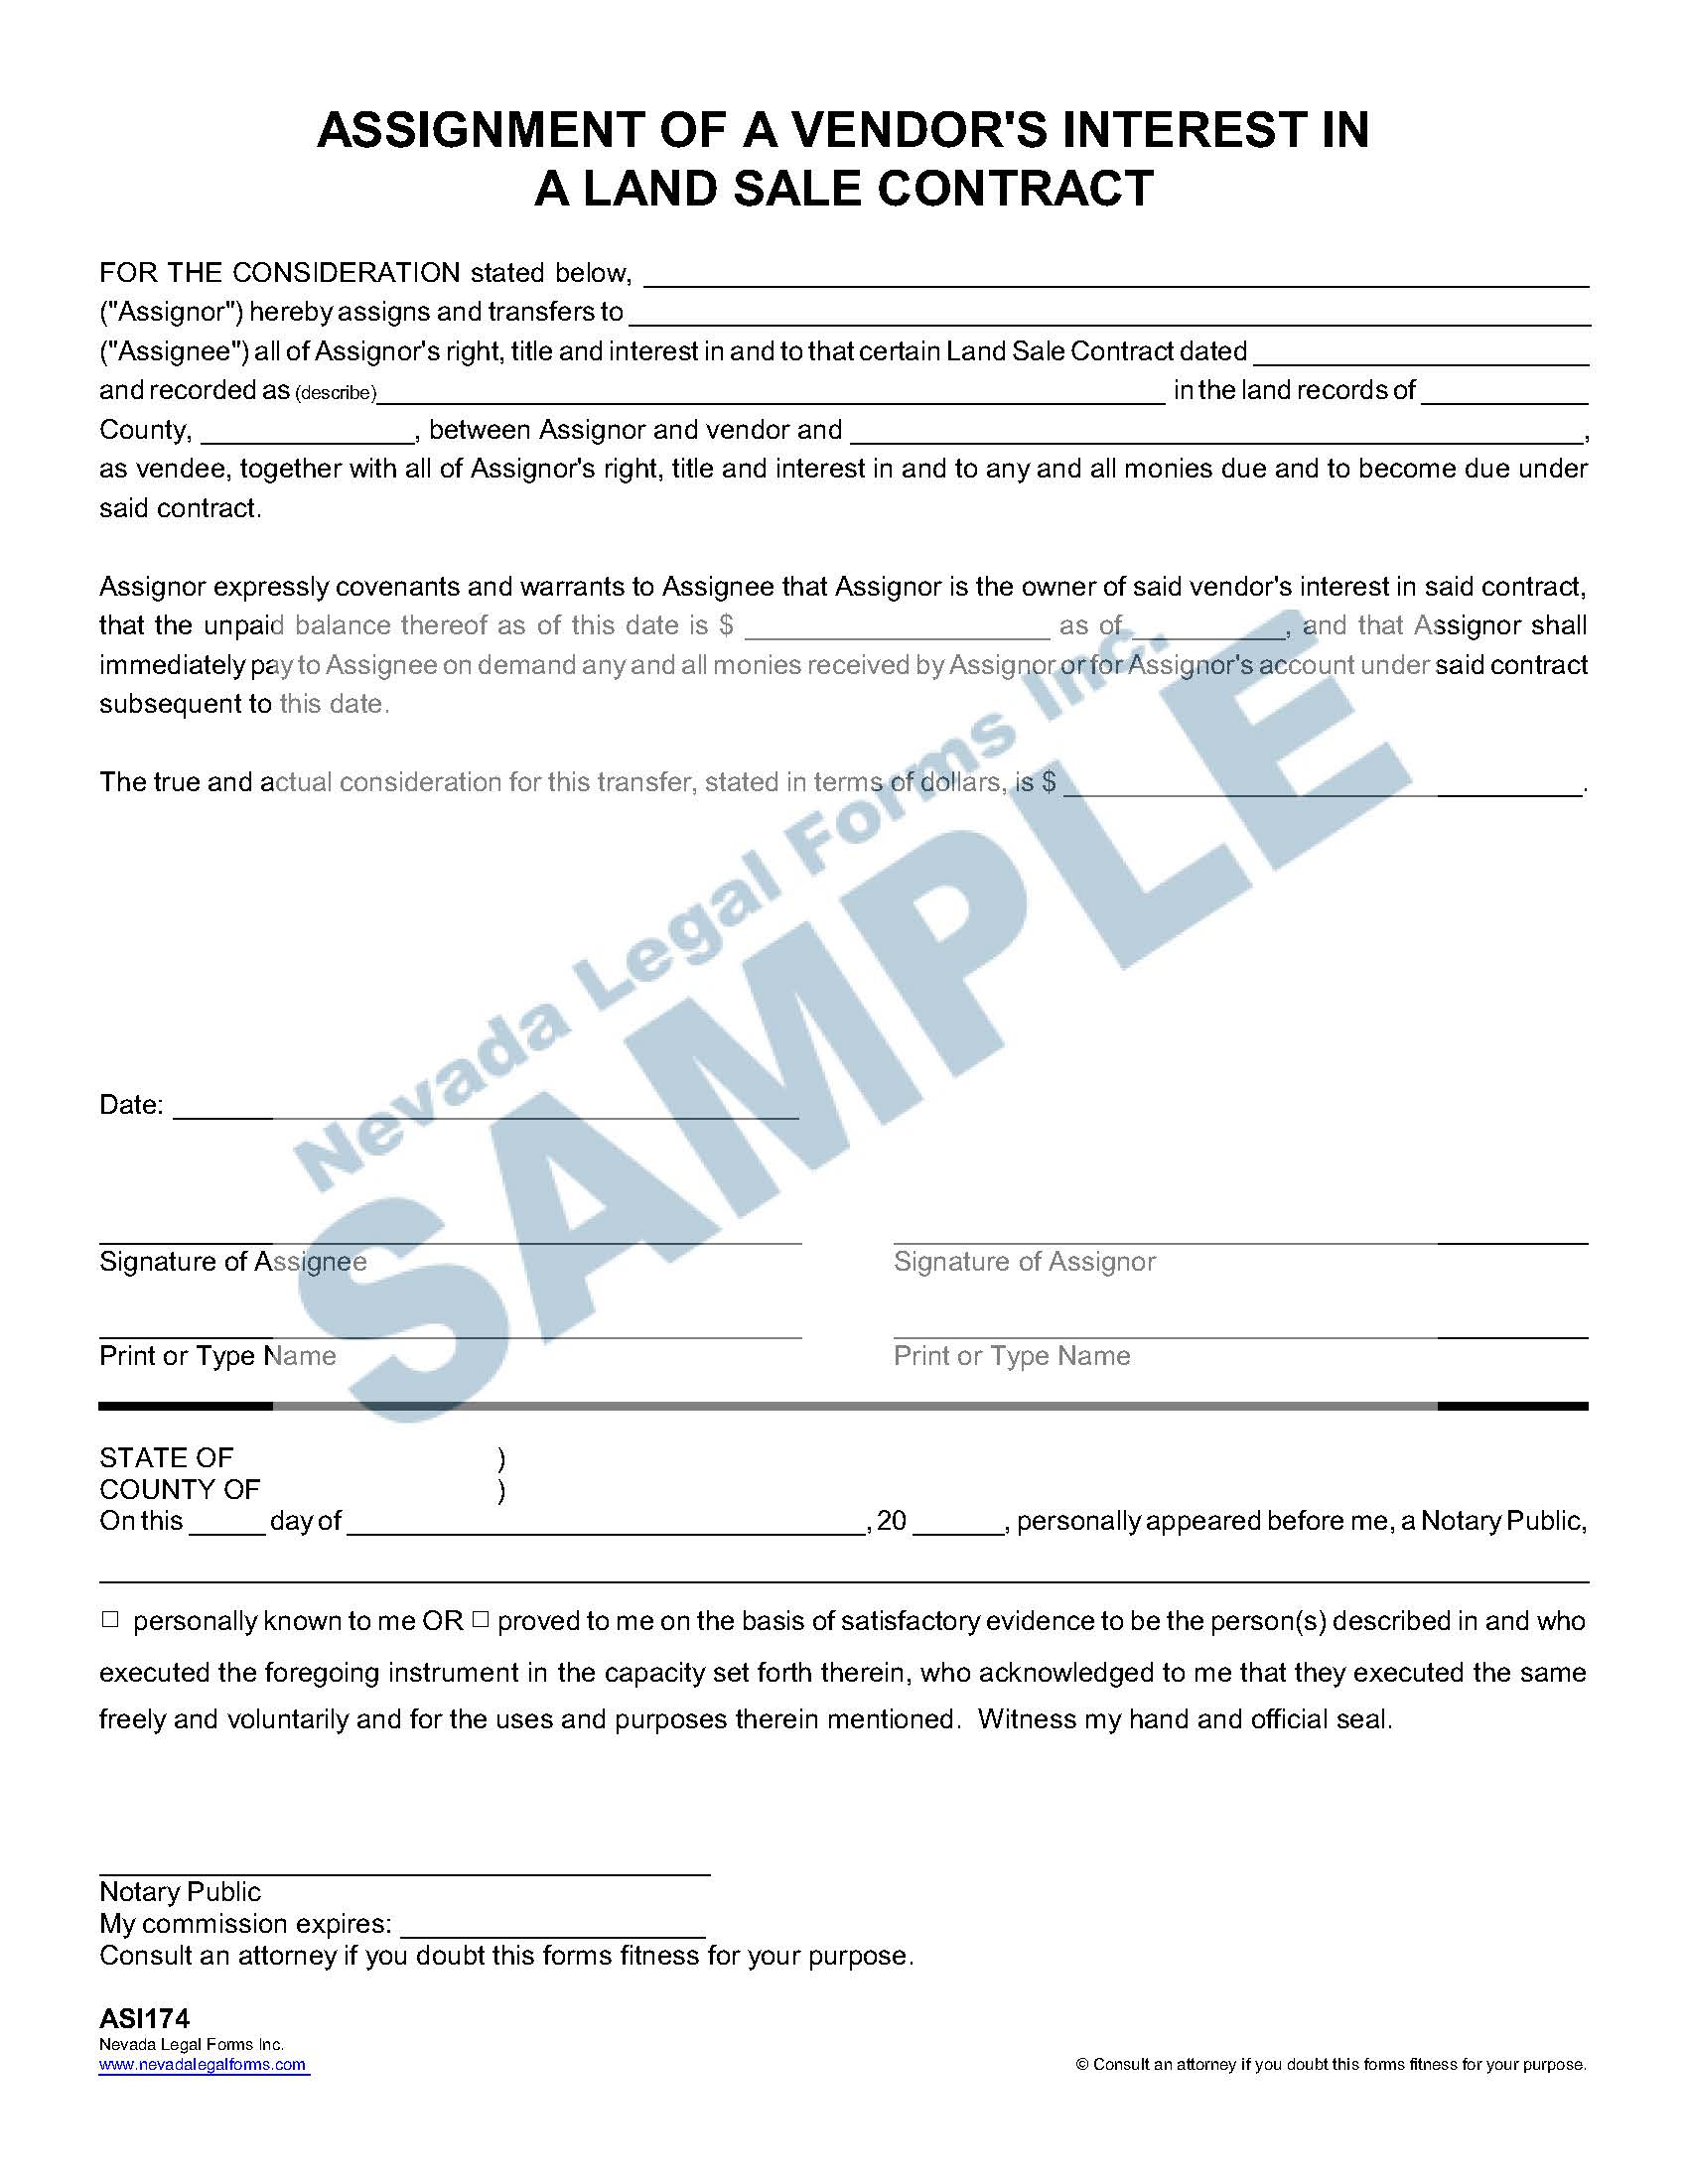 Assignment Of A Vendor S Interest In A Land Sale